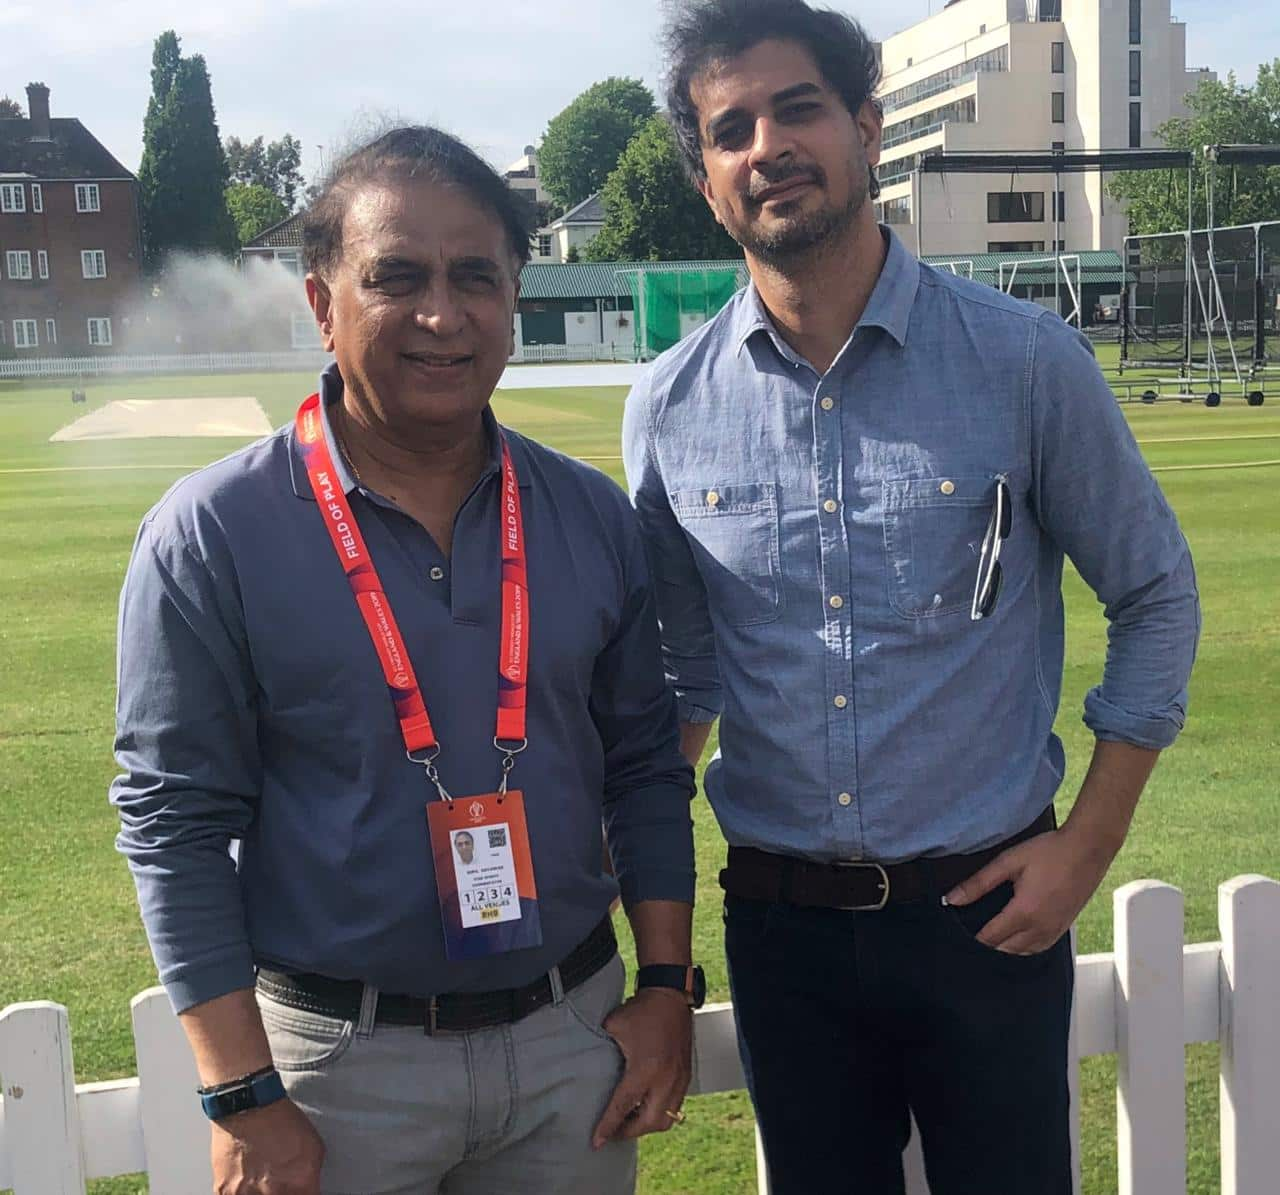 'I Have Always Felt, I Actually Lived Those Festivities When India Won 83 World Cup' : Tahir Raj Bhasin On How The World Cup Win Impacted His Childhood